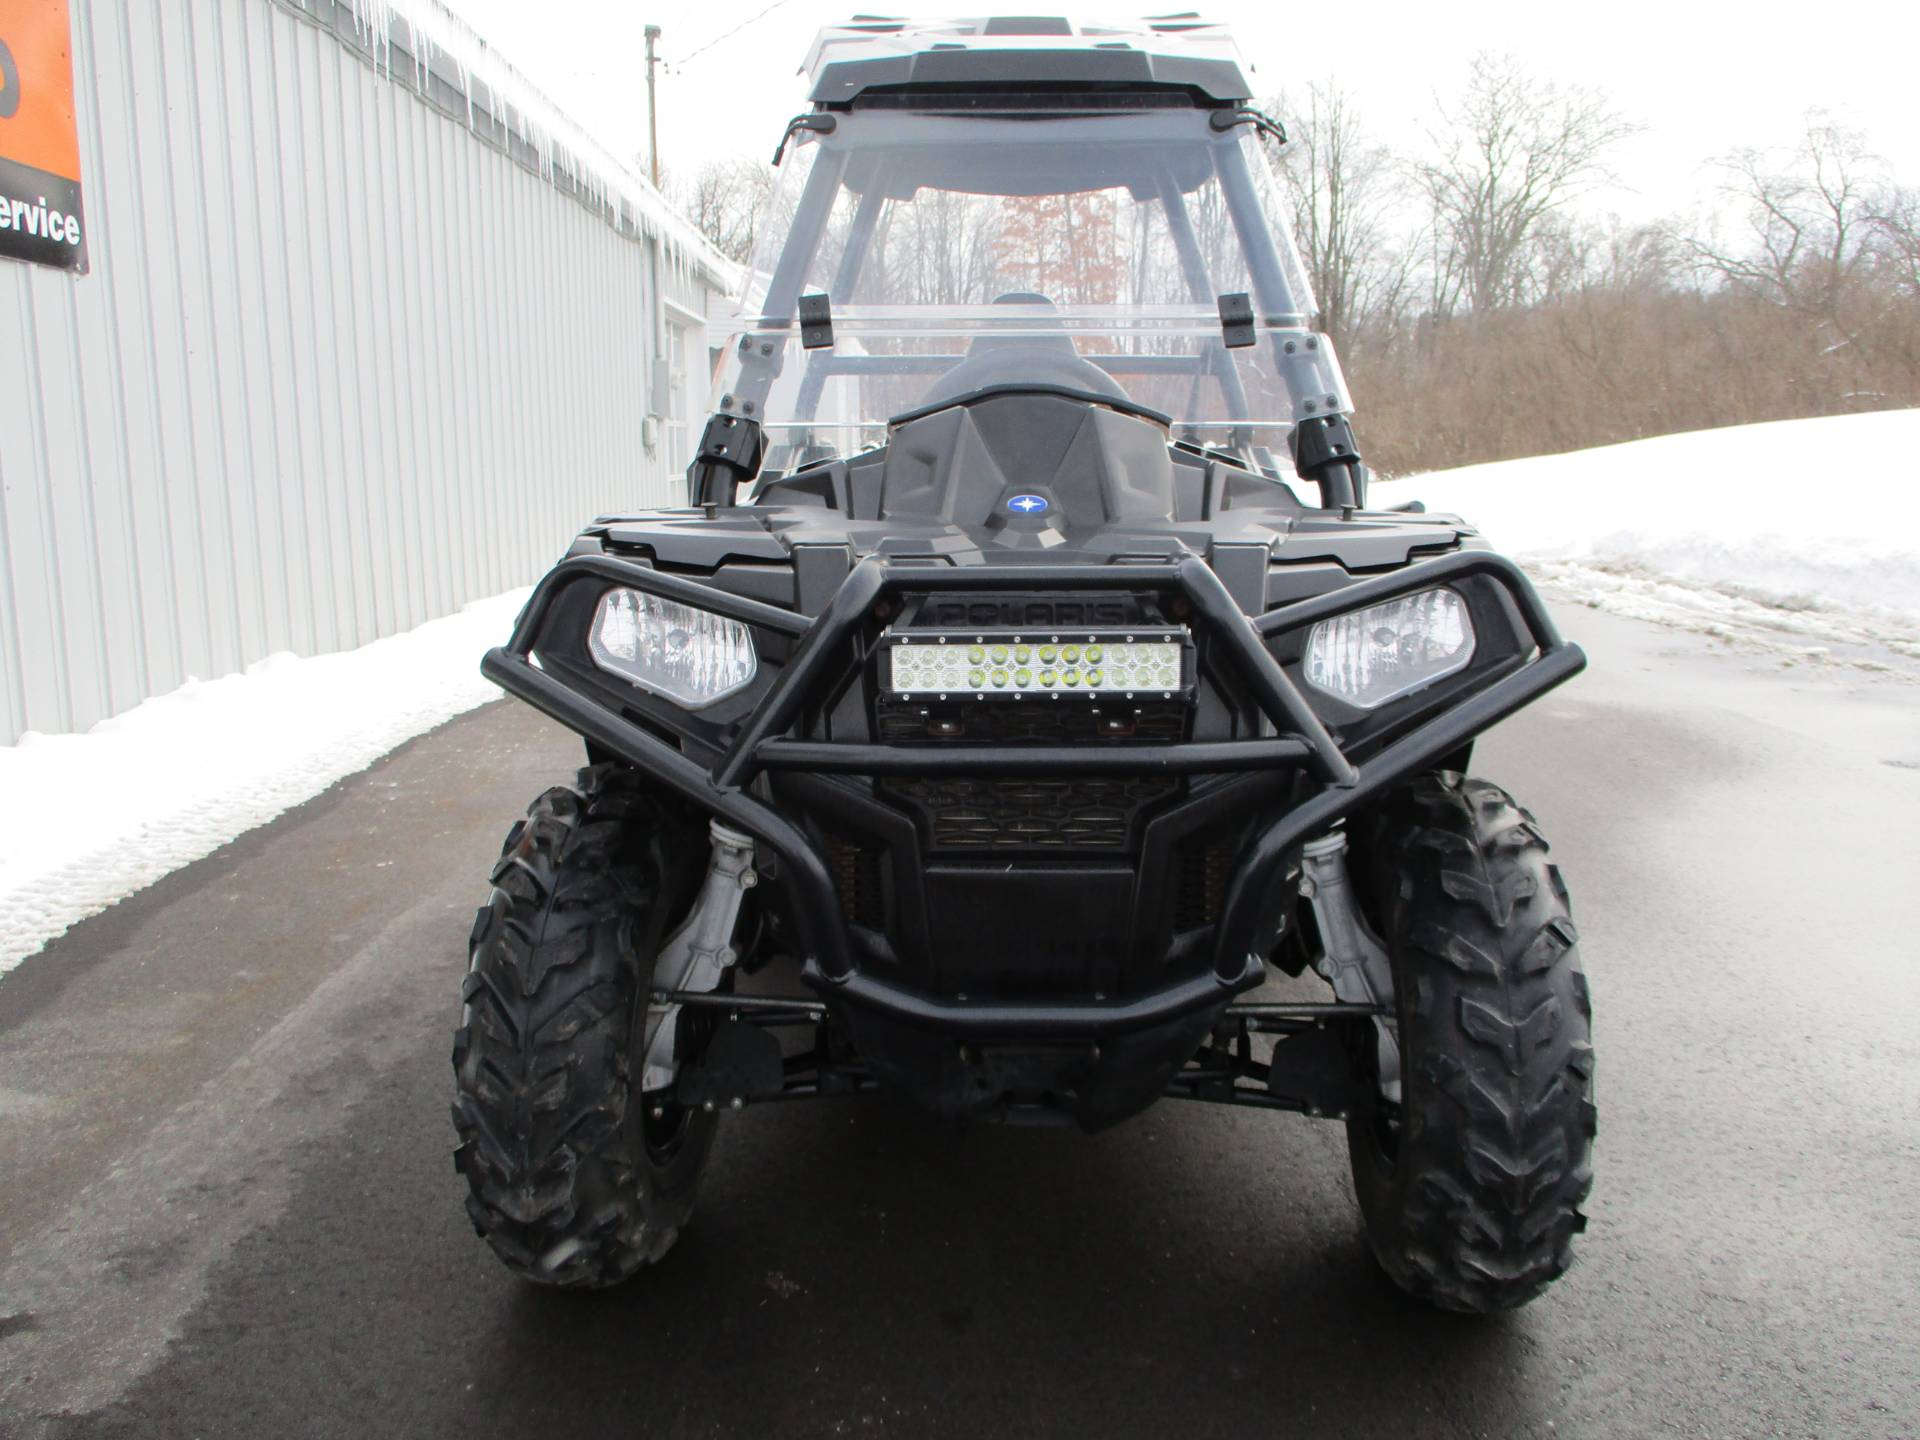 2016 Polaris ACE 900 SP in Howell, Michigan - Photo 2